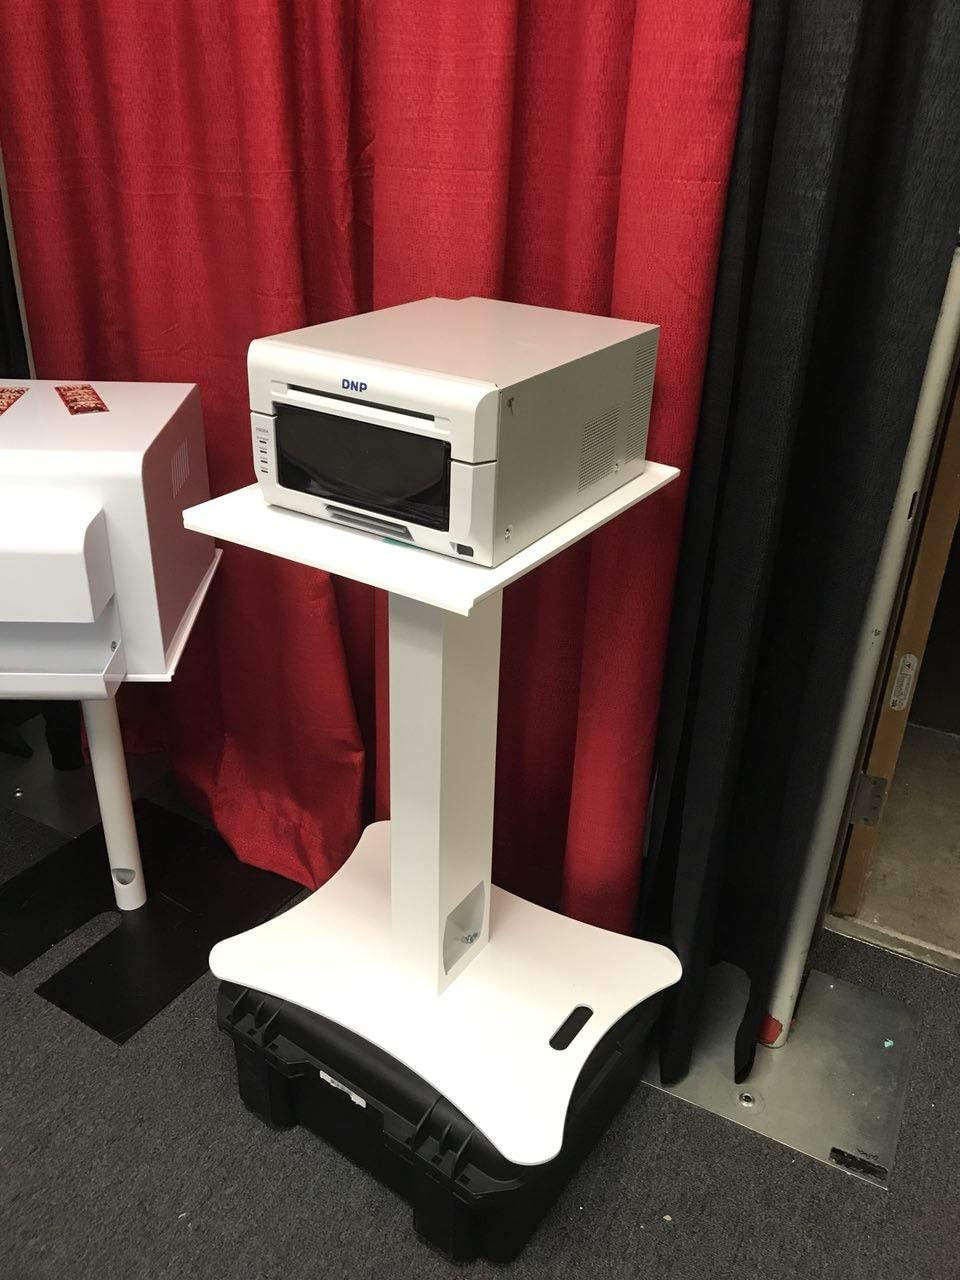 Event Specialty Store Printer Stand Aircraft-Grade Aluminum Proudly Made in The USA │ Perfectly Matches Your Photo Booth │ Built for Maximum Portability and Durability White